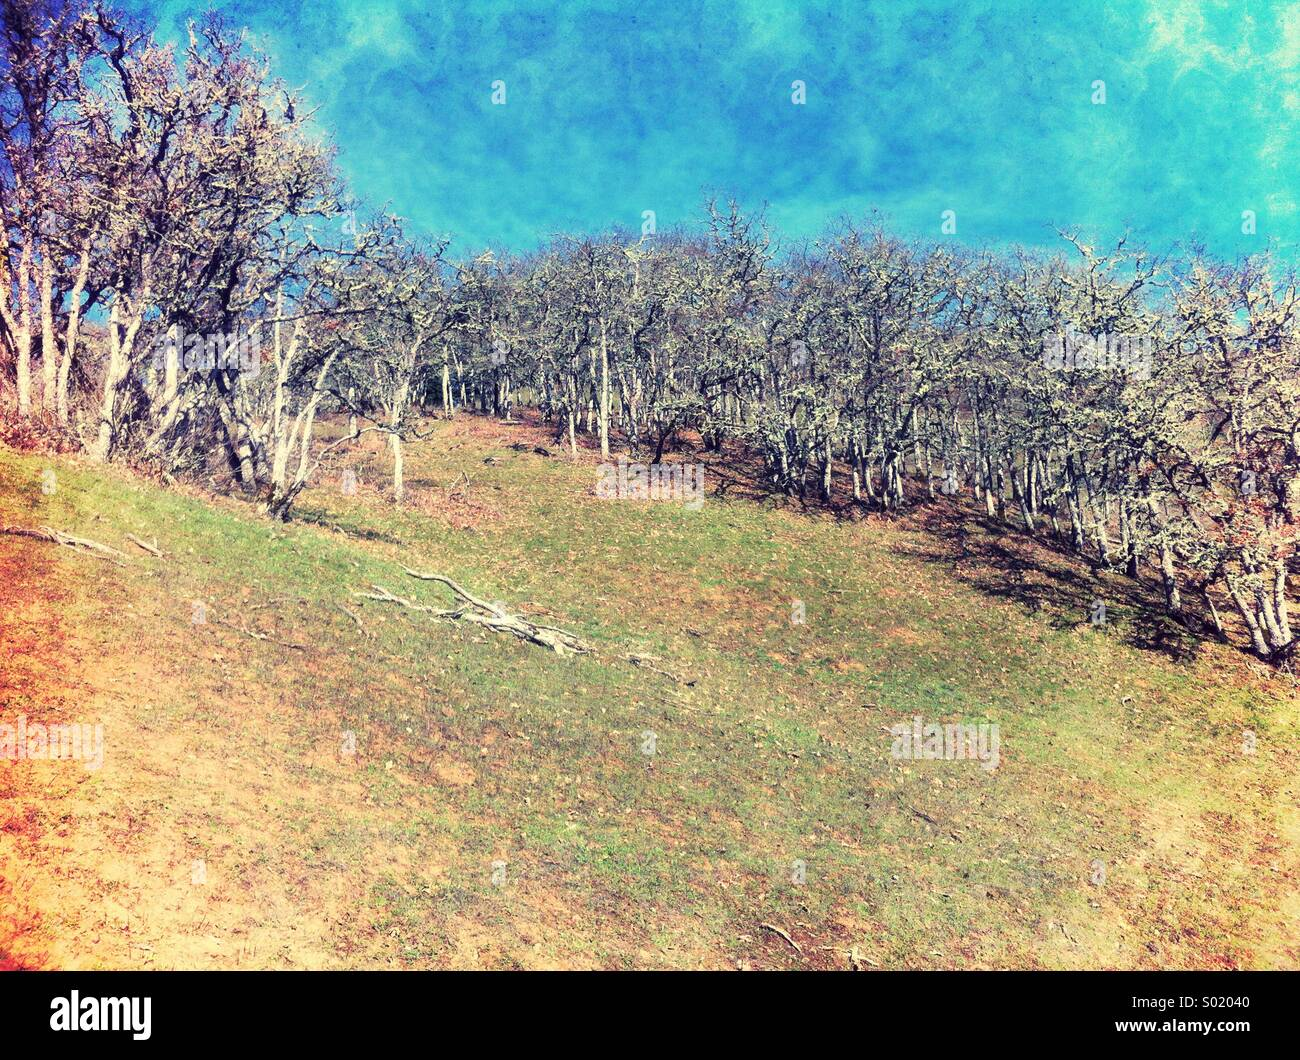 Hillside with trees - Stock Image